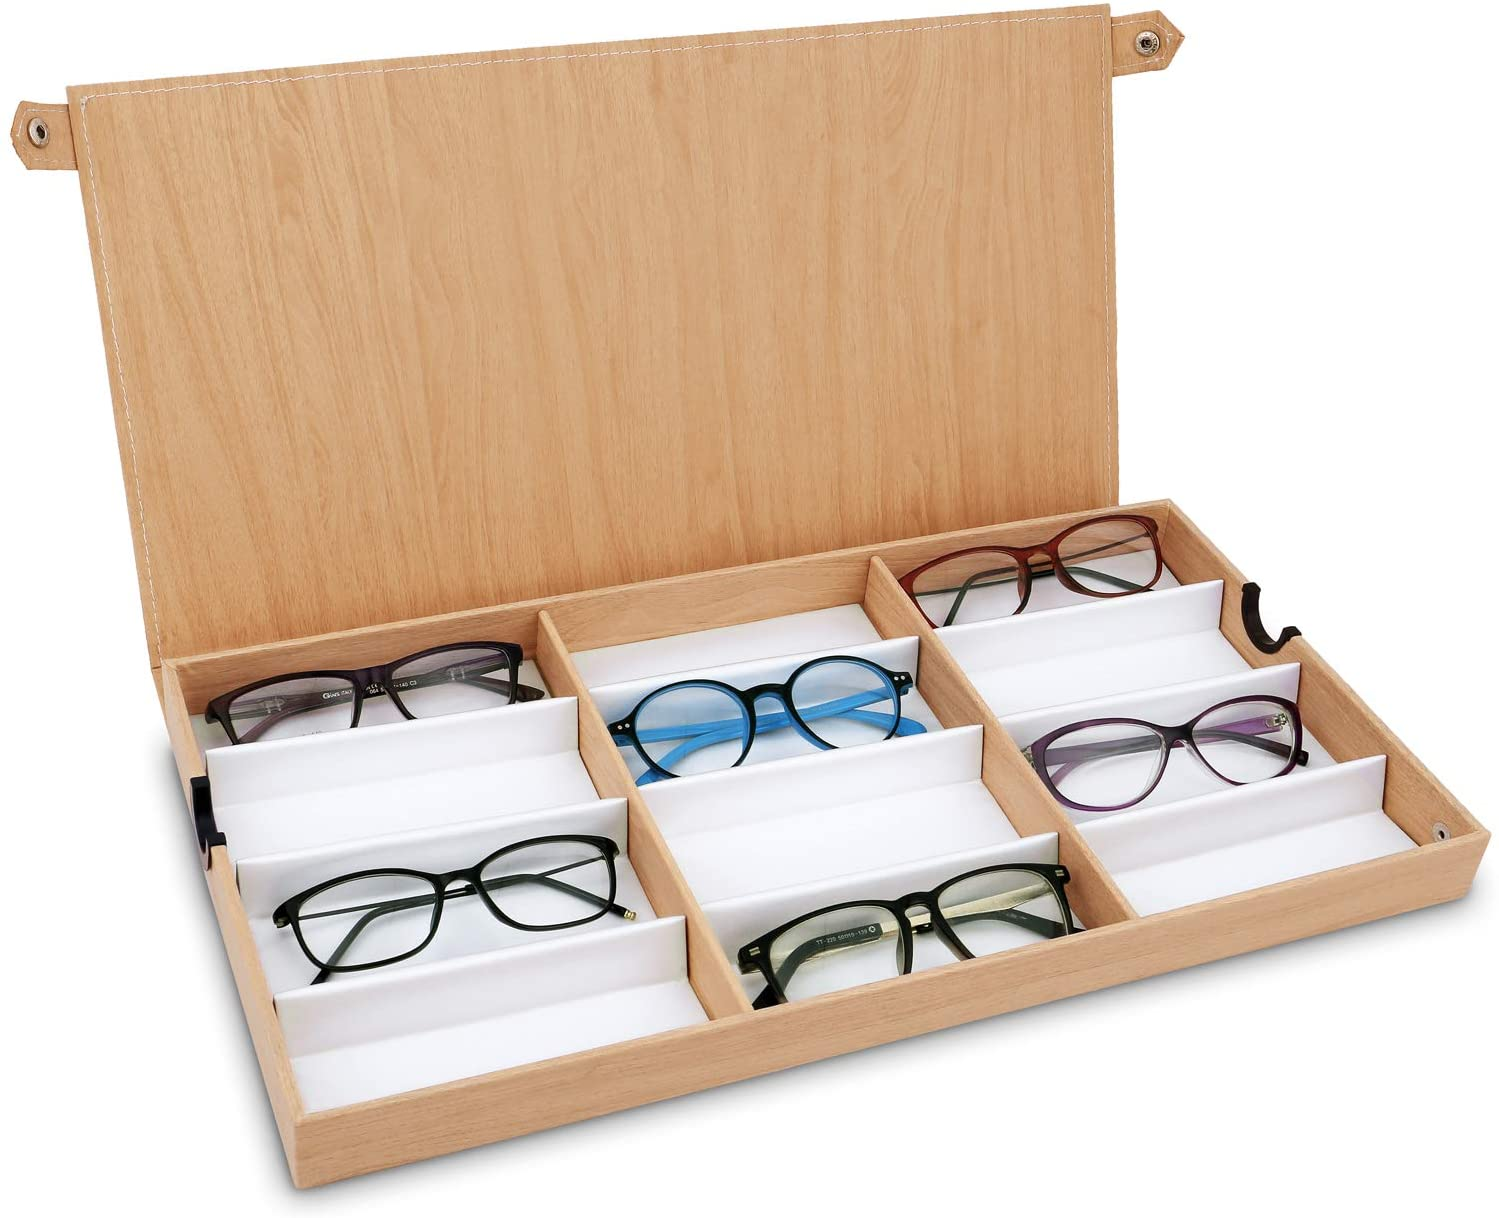 """Ikee Design 12 Slots Eyewear Storage Organizer for Small or Medium Glasses Display Tray, Wood Pattern Cover for Eyeglasses, Watches and Jewelry, Oak, 19""""W x 10""""D x 1 1/2"""